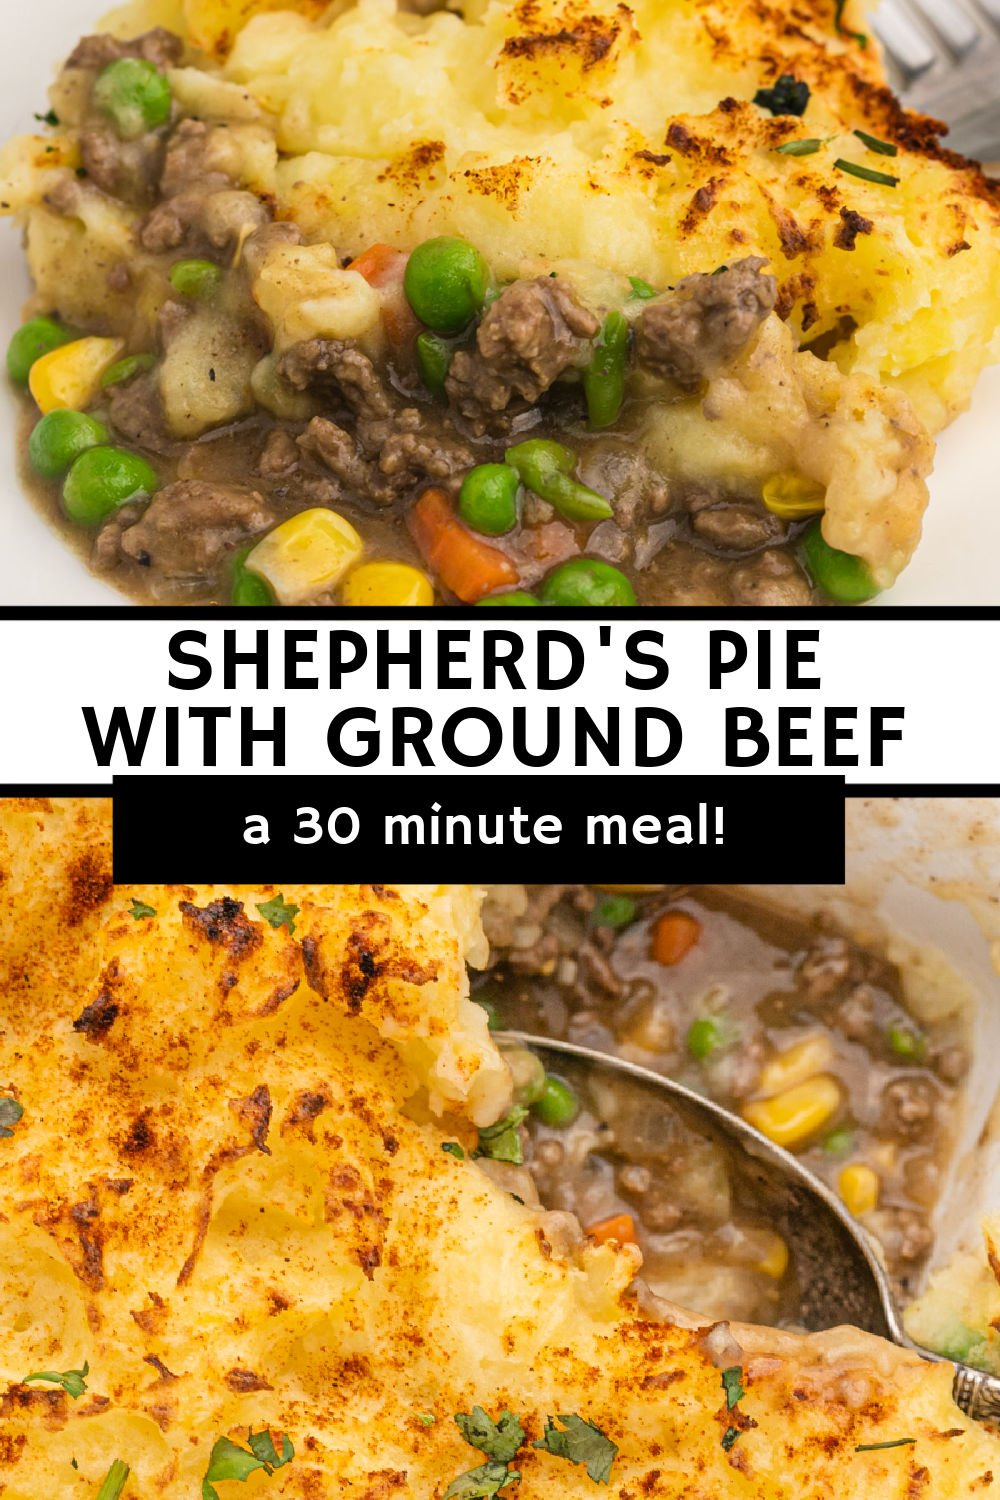 This easy Shepherd's Pie is made with beef (sometimes called Cottage Pie) and will be ready in just about 30 minutes. A layer of ground beef mixed with a flavorful, veggie-filed gravy and topped with mashed potatoes is comfort food at its finest. | www.persnicketyplates.com